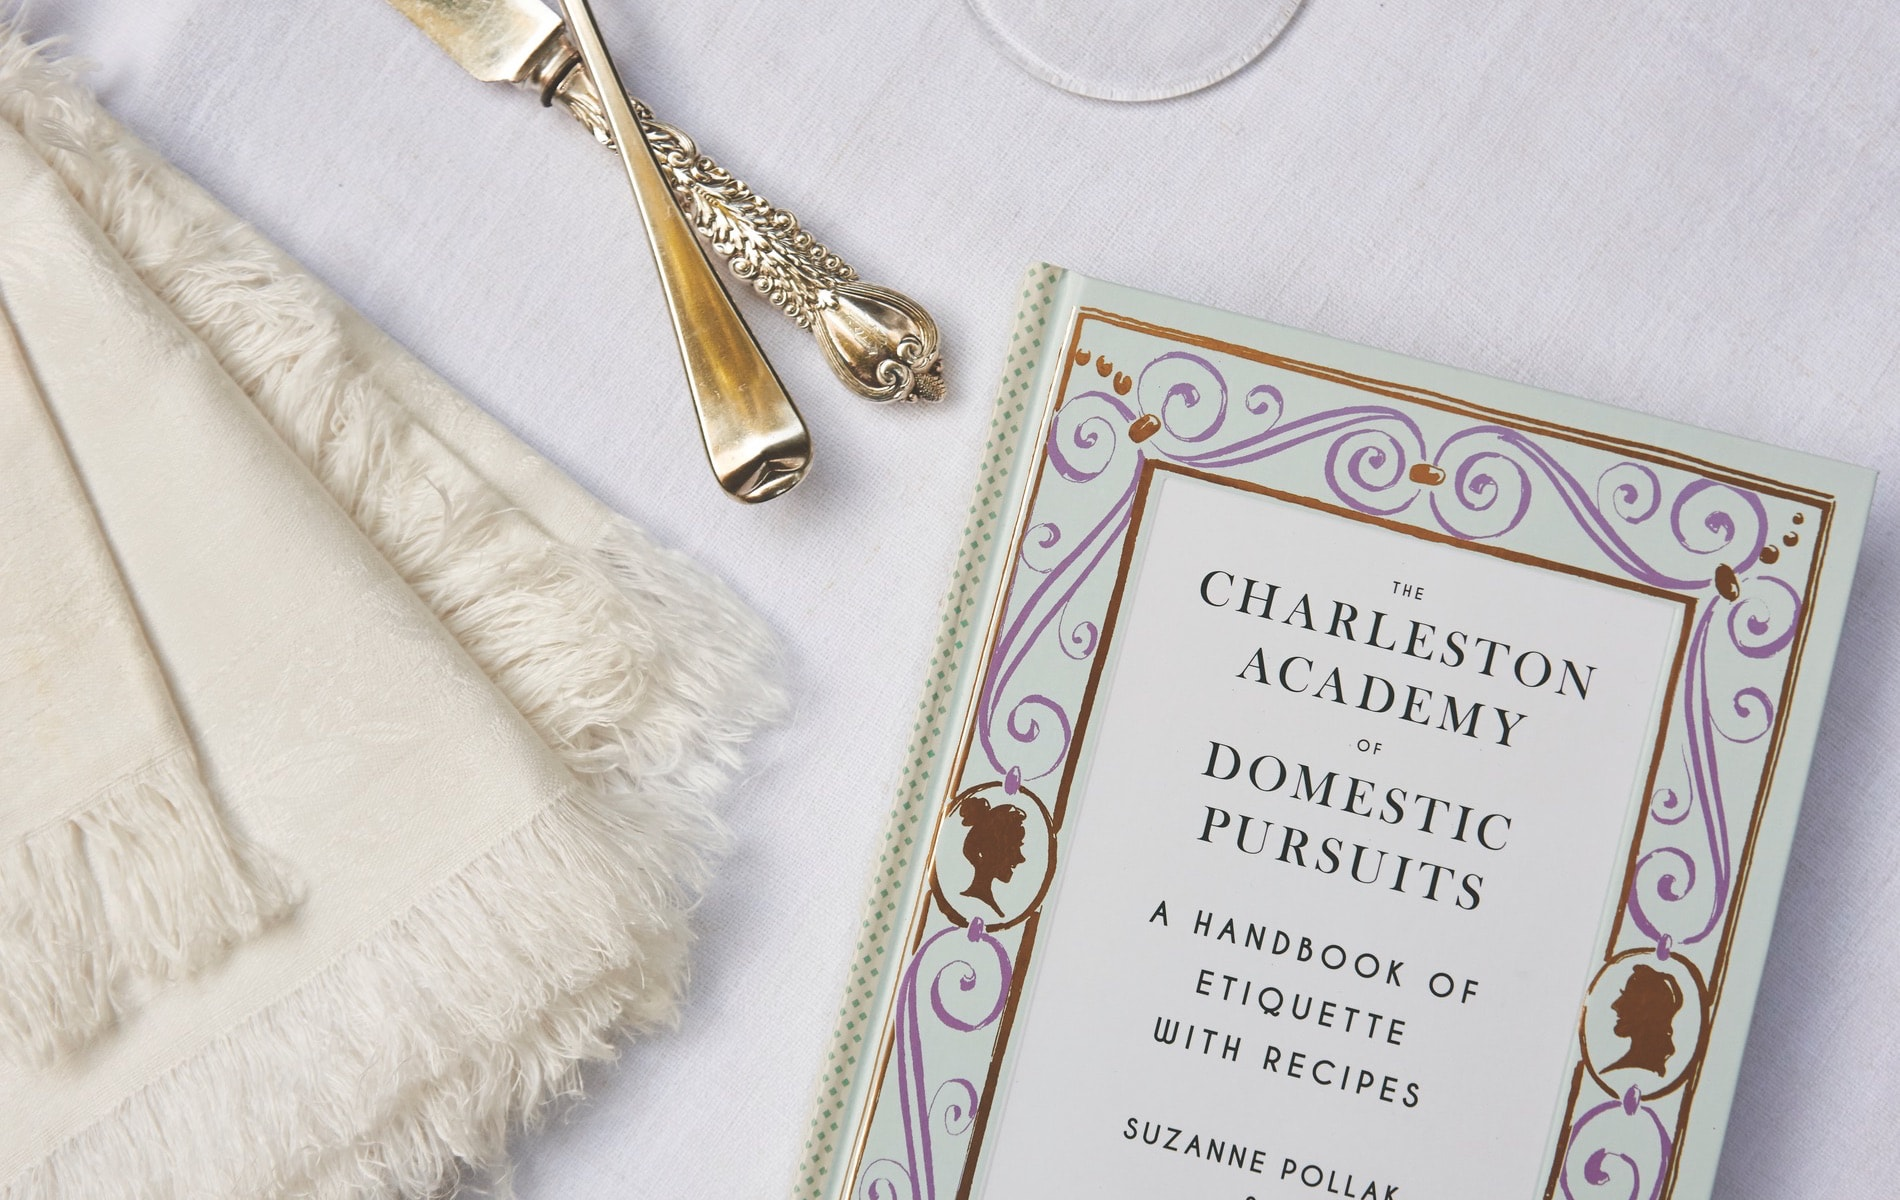 Suzanne Pollak Column VIE May 2019 Culinary Issue, The Charleston Academy of Domestic Pursuits: A Handbook of Etiquette with Recipes